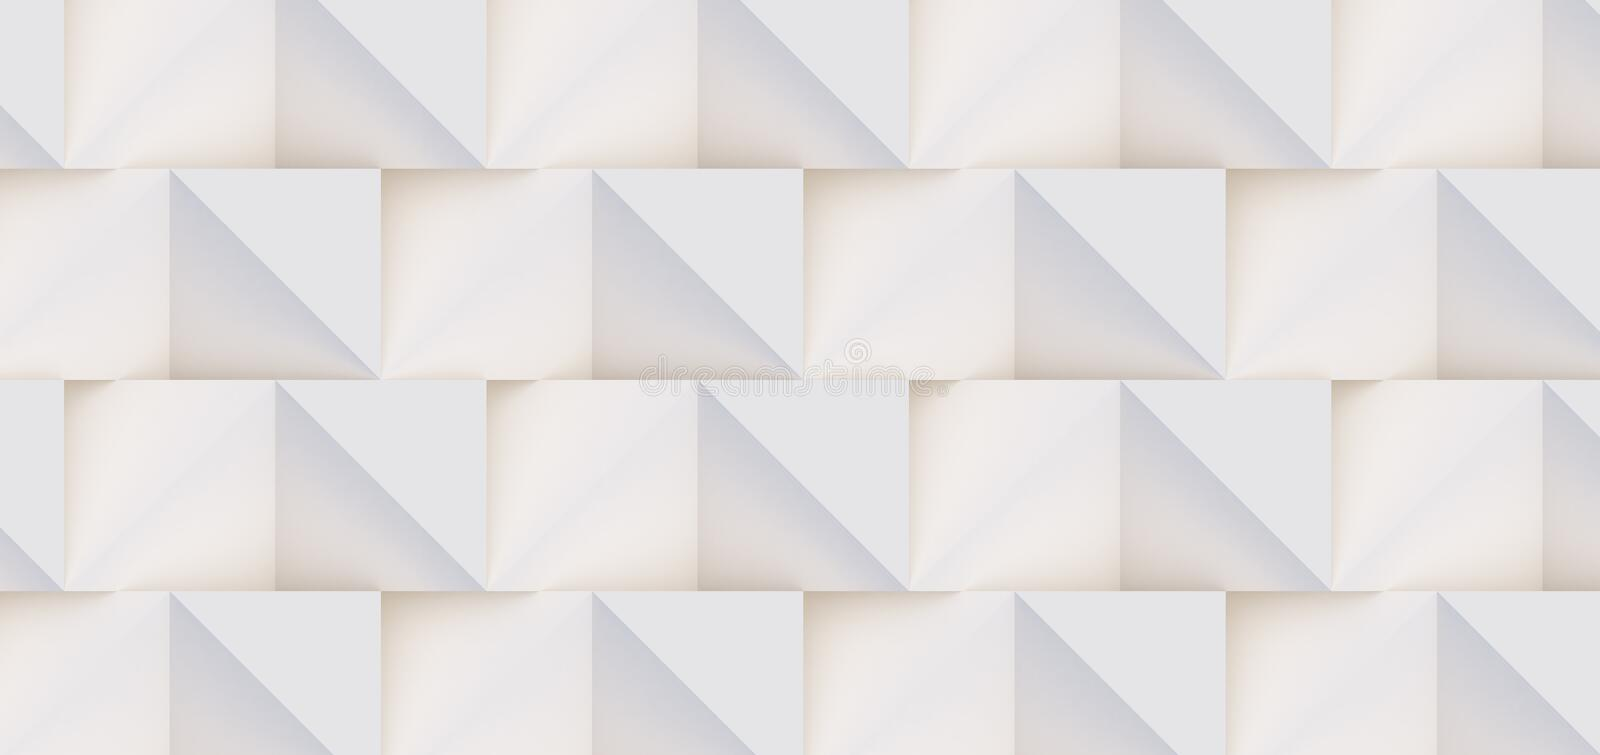 3D pattern of white and beige geometric shapes. 3D pattern made of white and beige geometric shapes, creative background or wallpaper surface made of light and stock images